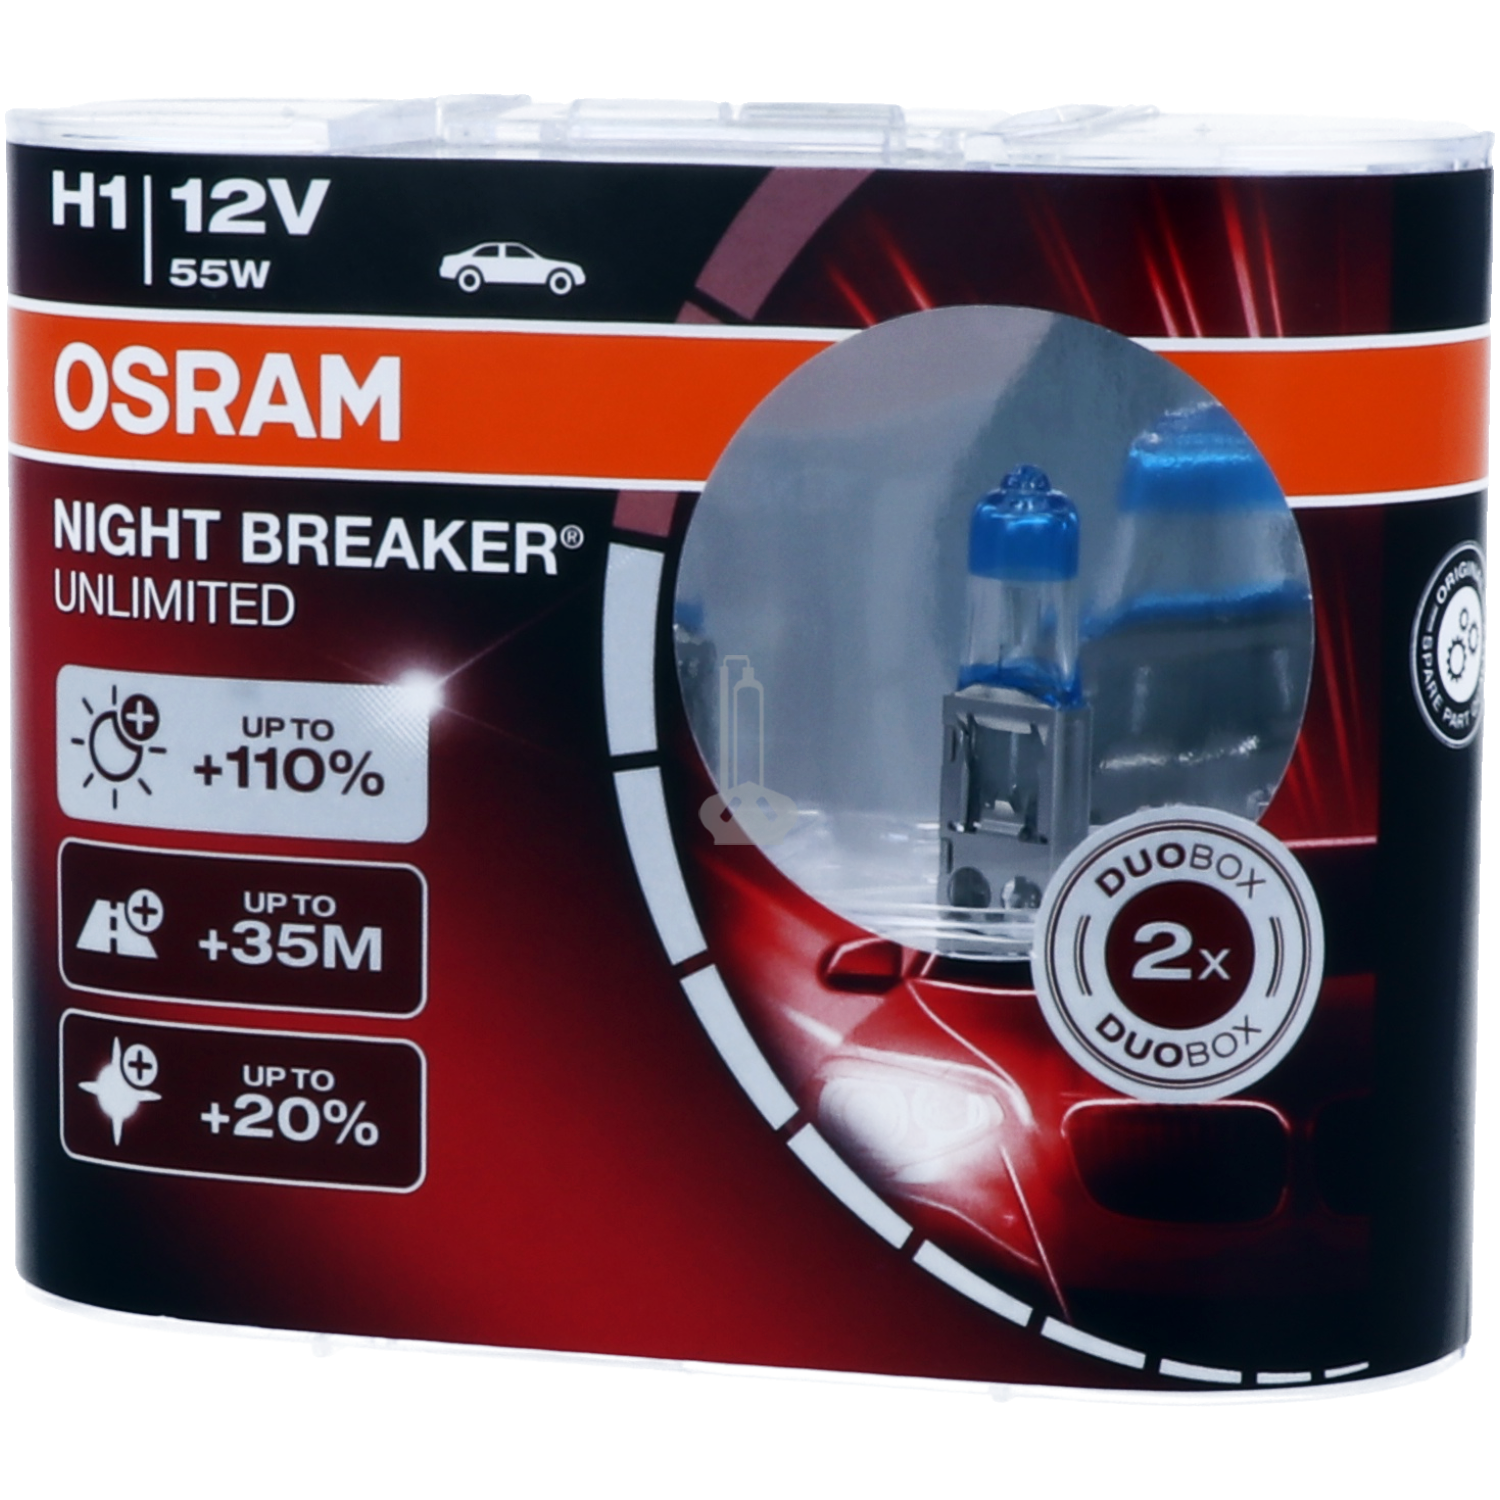 OSRAM Night Breaker UNLIMITED - Power